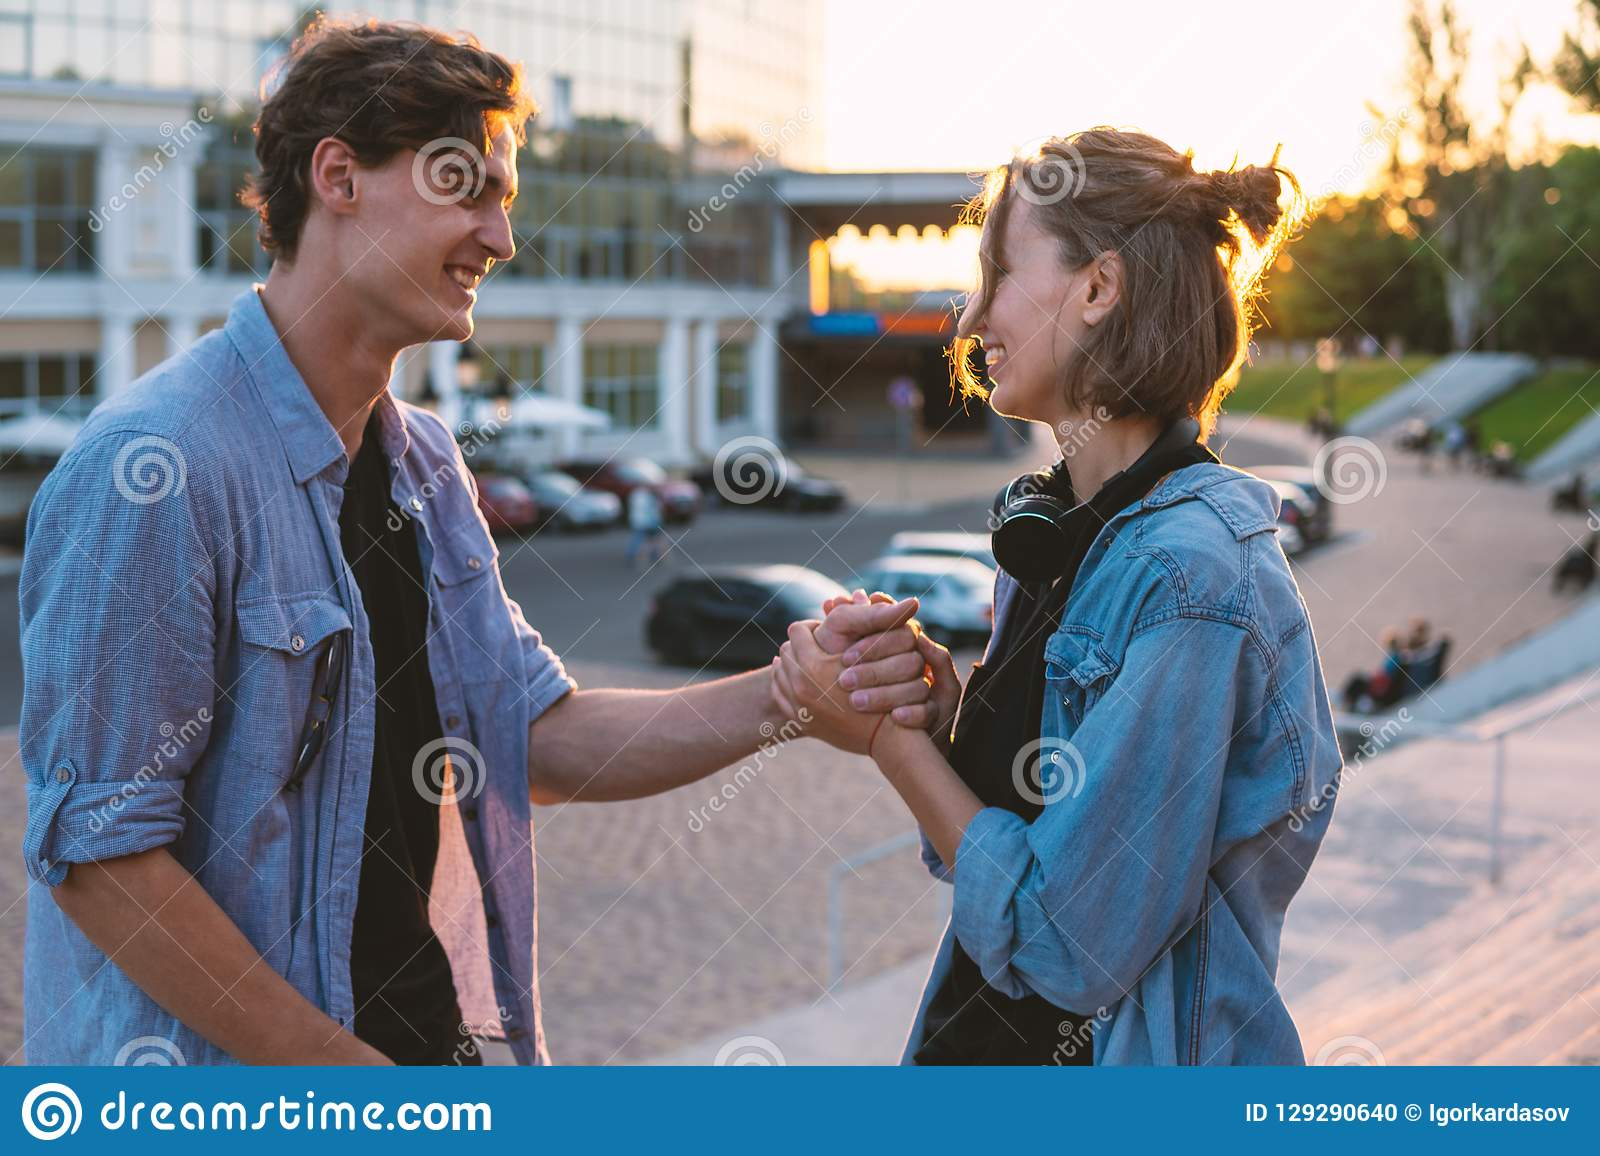 c29f016fbc9 Lovely Young Hipster Couple Dating During Summer Sunset. Stock Photo ...